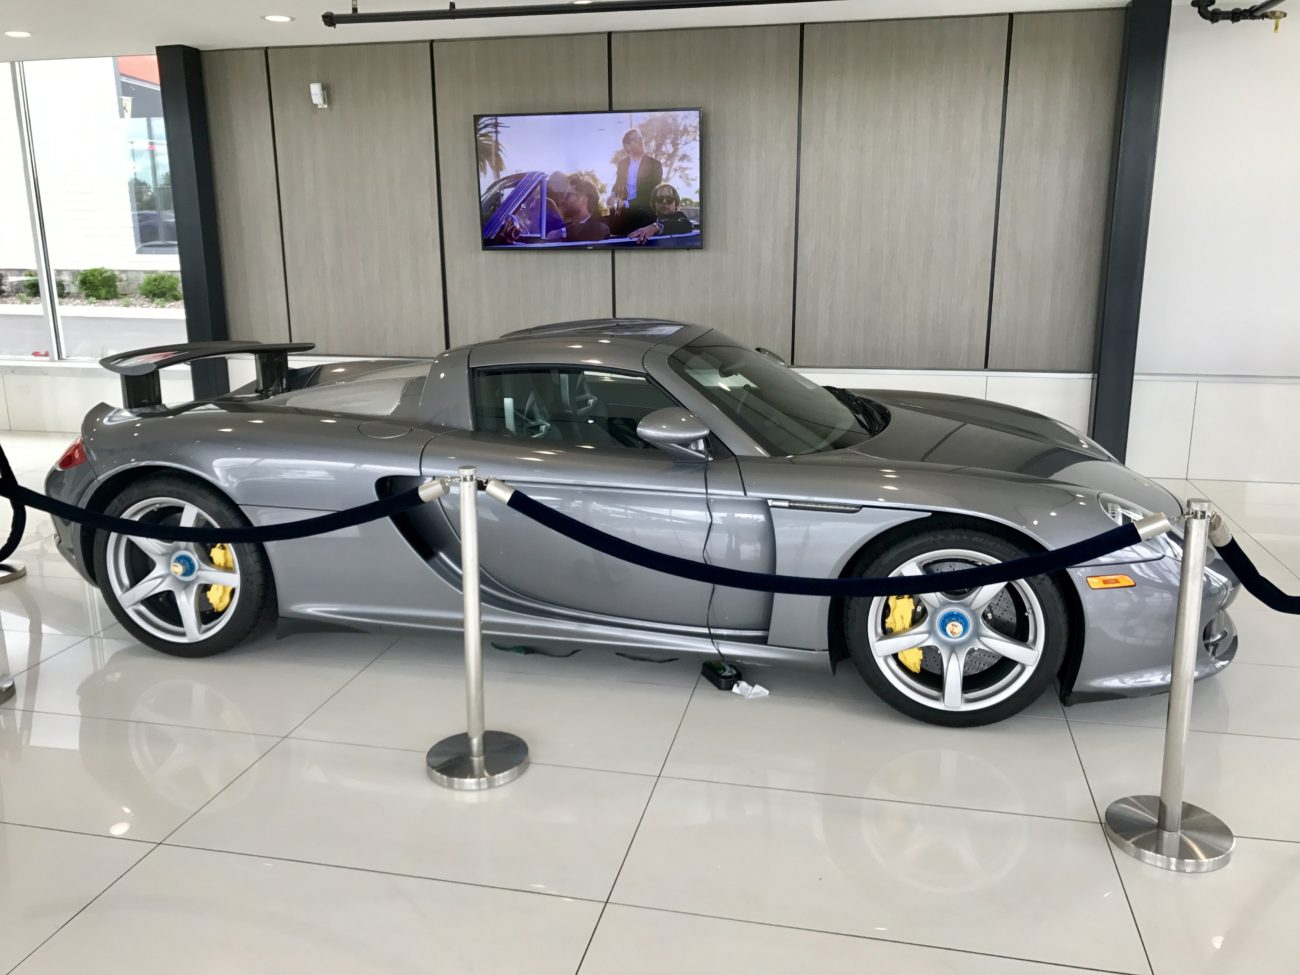 Porsche Carrera GT - Chicago Motor Cars Jewelry Box - Iron Gate Motor Plaza